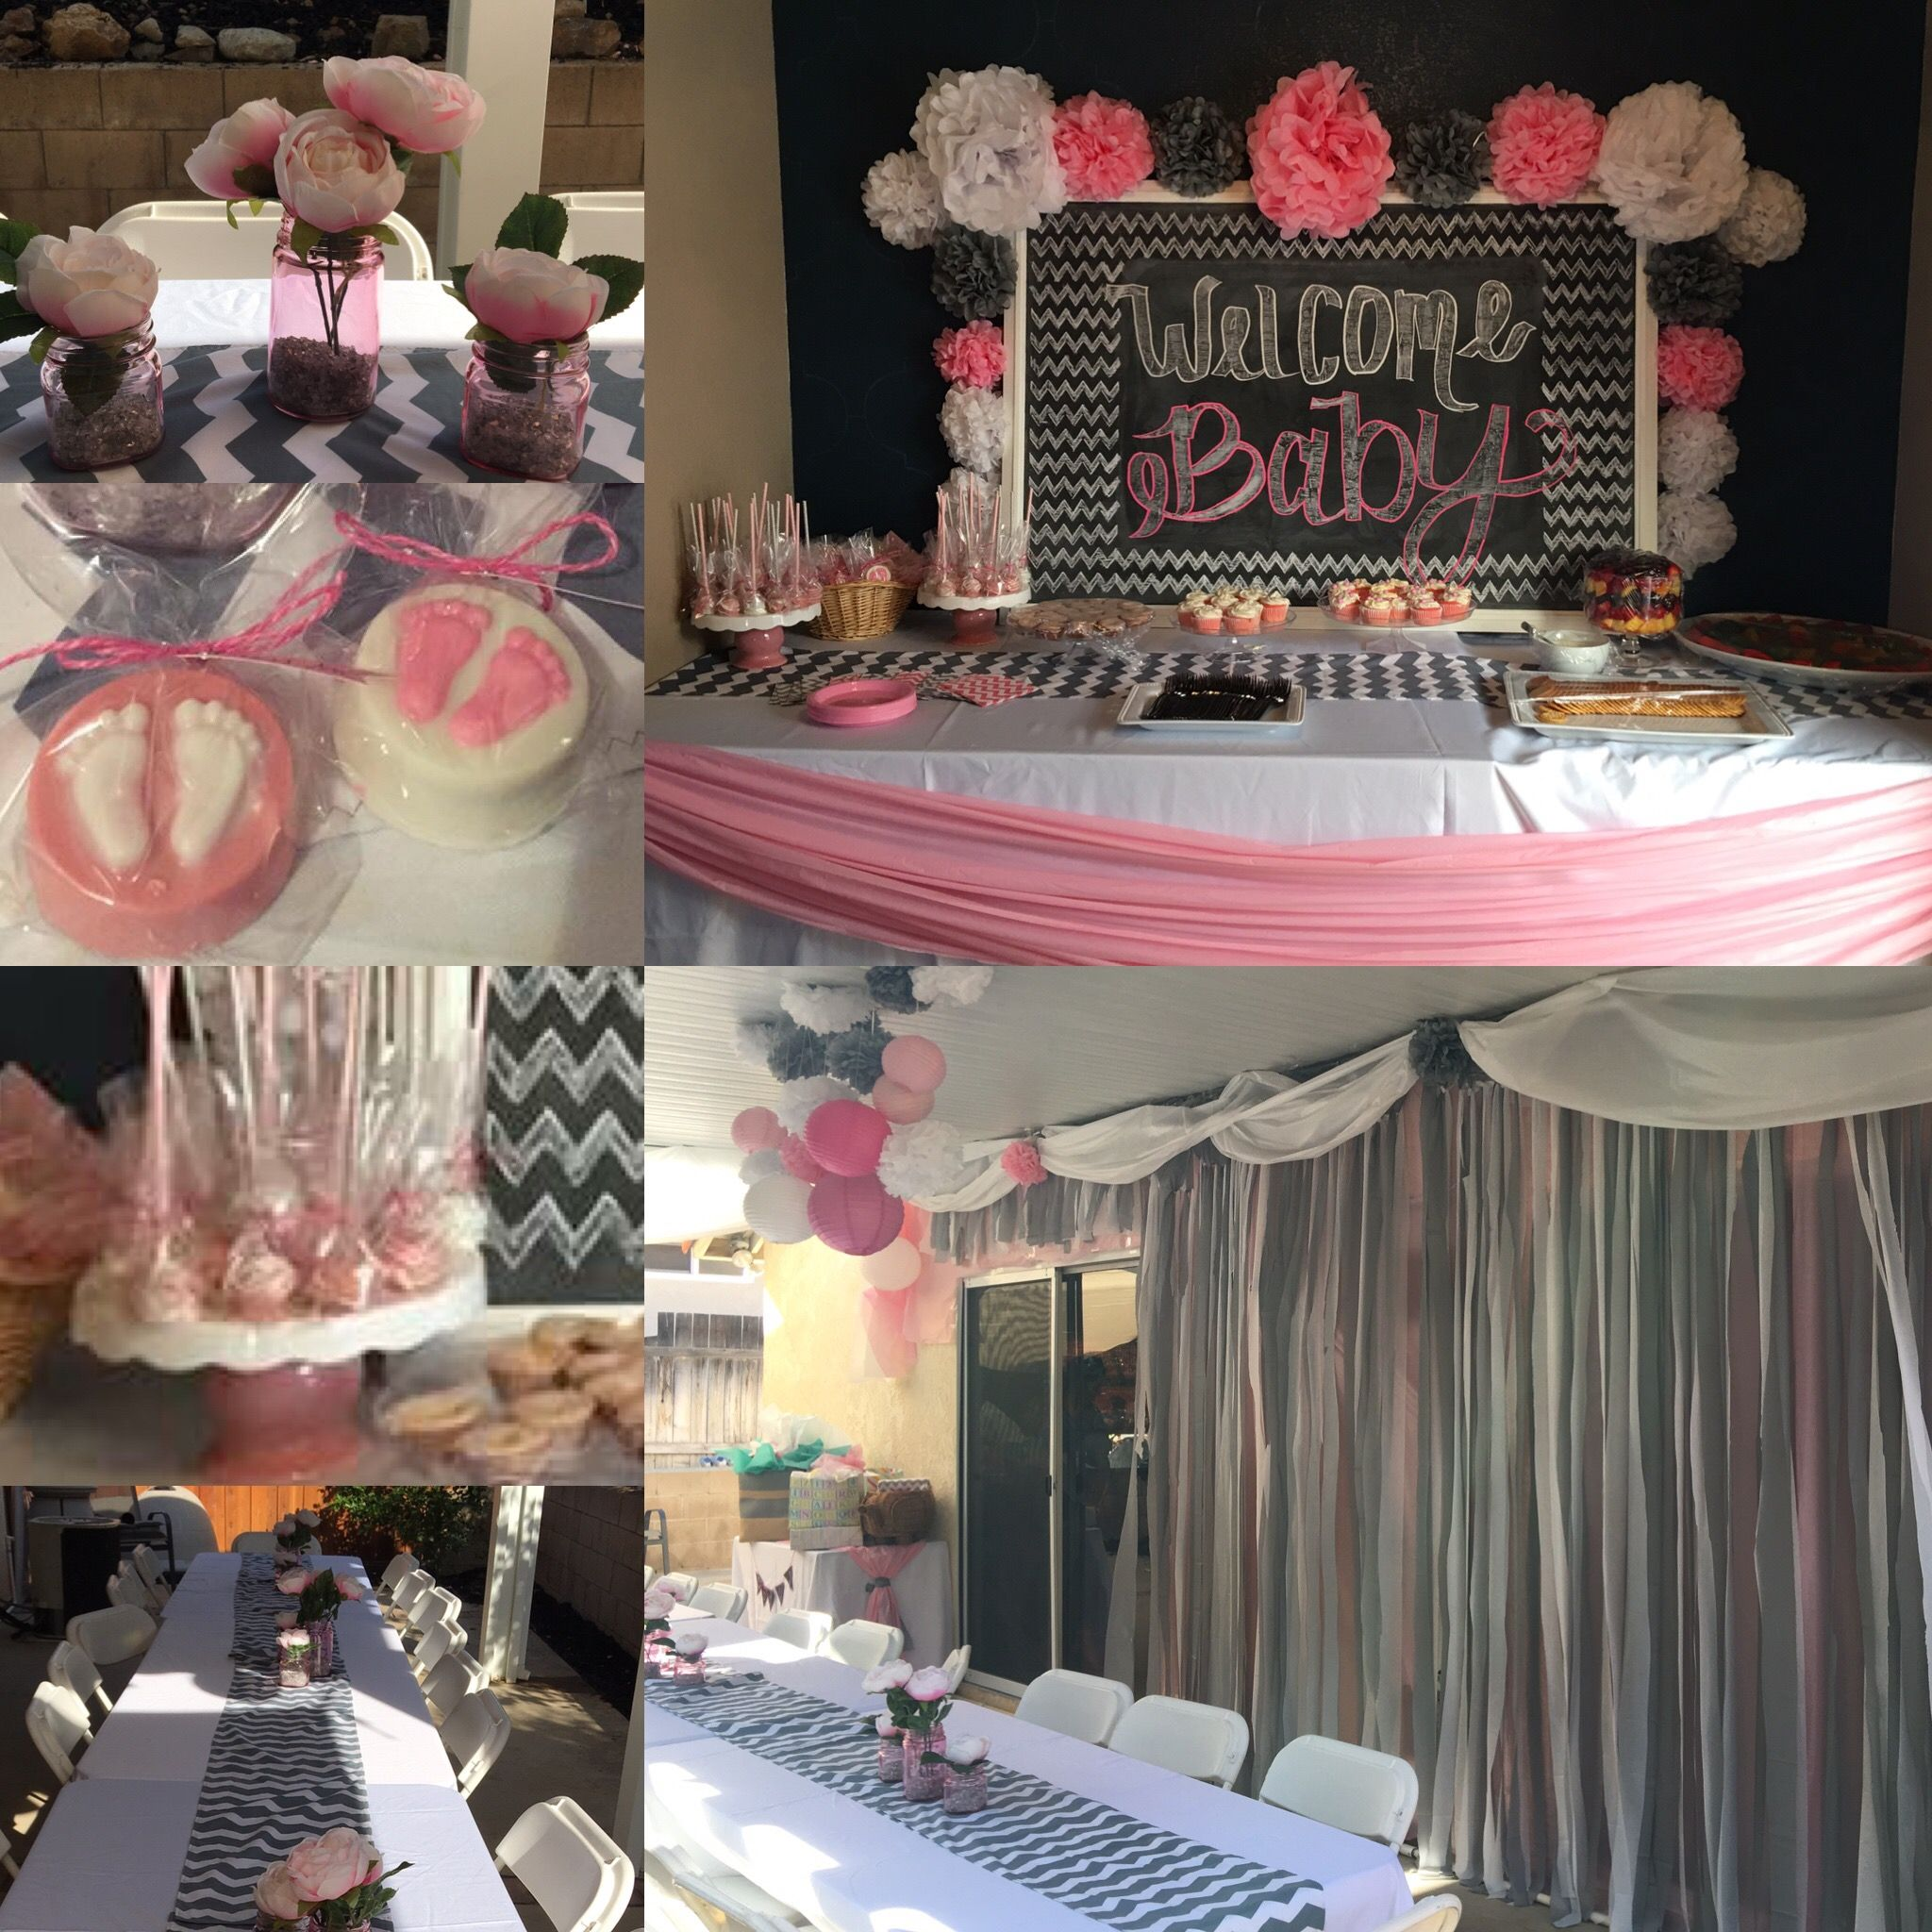 Baby shower decorations grey chevron pink and white done by meeee pinterest grey chevron - Baby shower chevron decorations ...